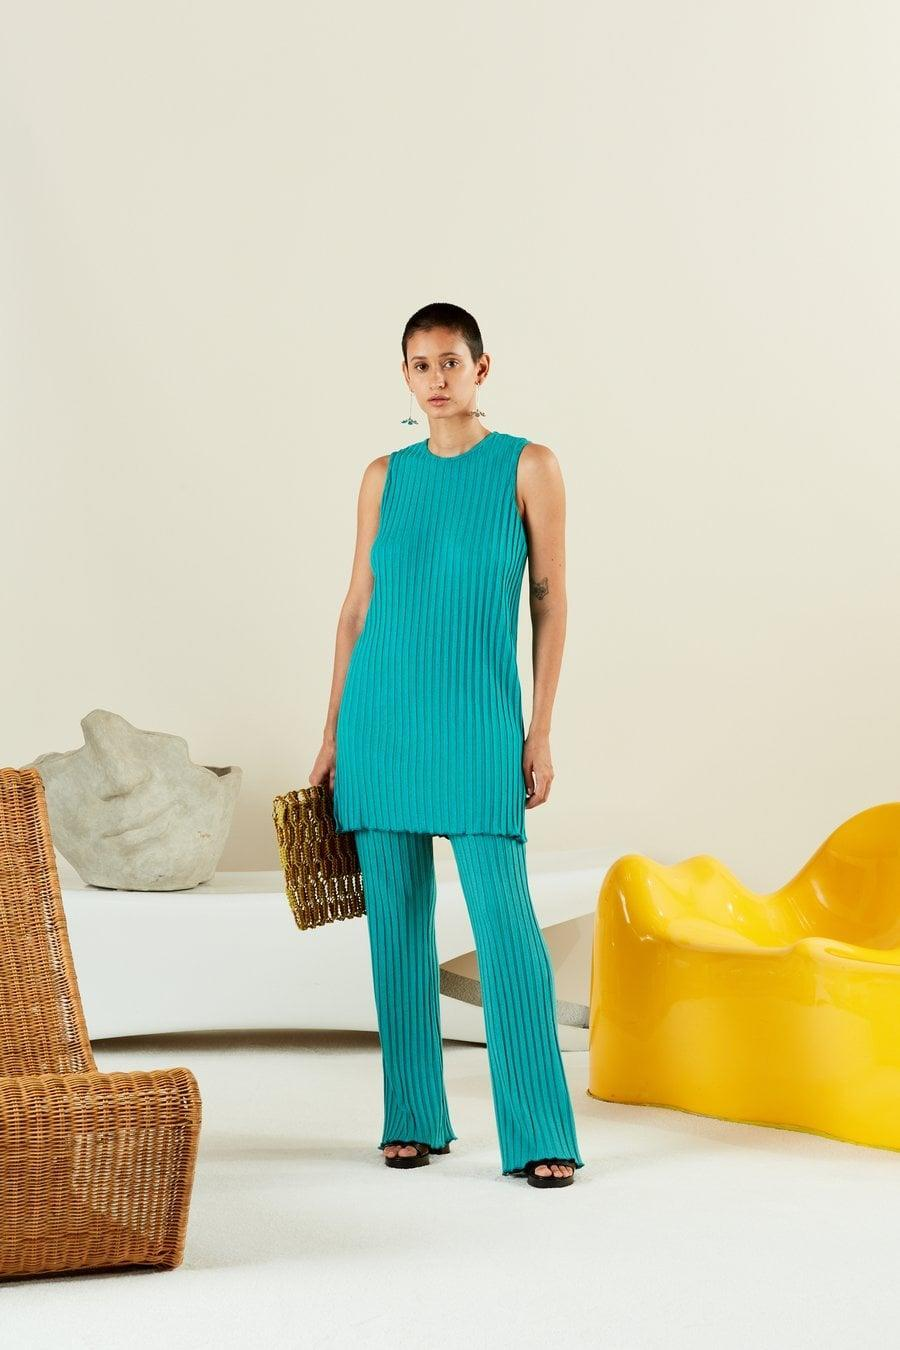 <p>Chic and versatile, this <span>Simon Miller Rib Aukai Tunic</span> ($150) doubles as a mini dress. Just add a pair of block-heel sandals or ankle boots.</p>